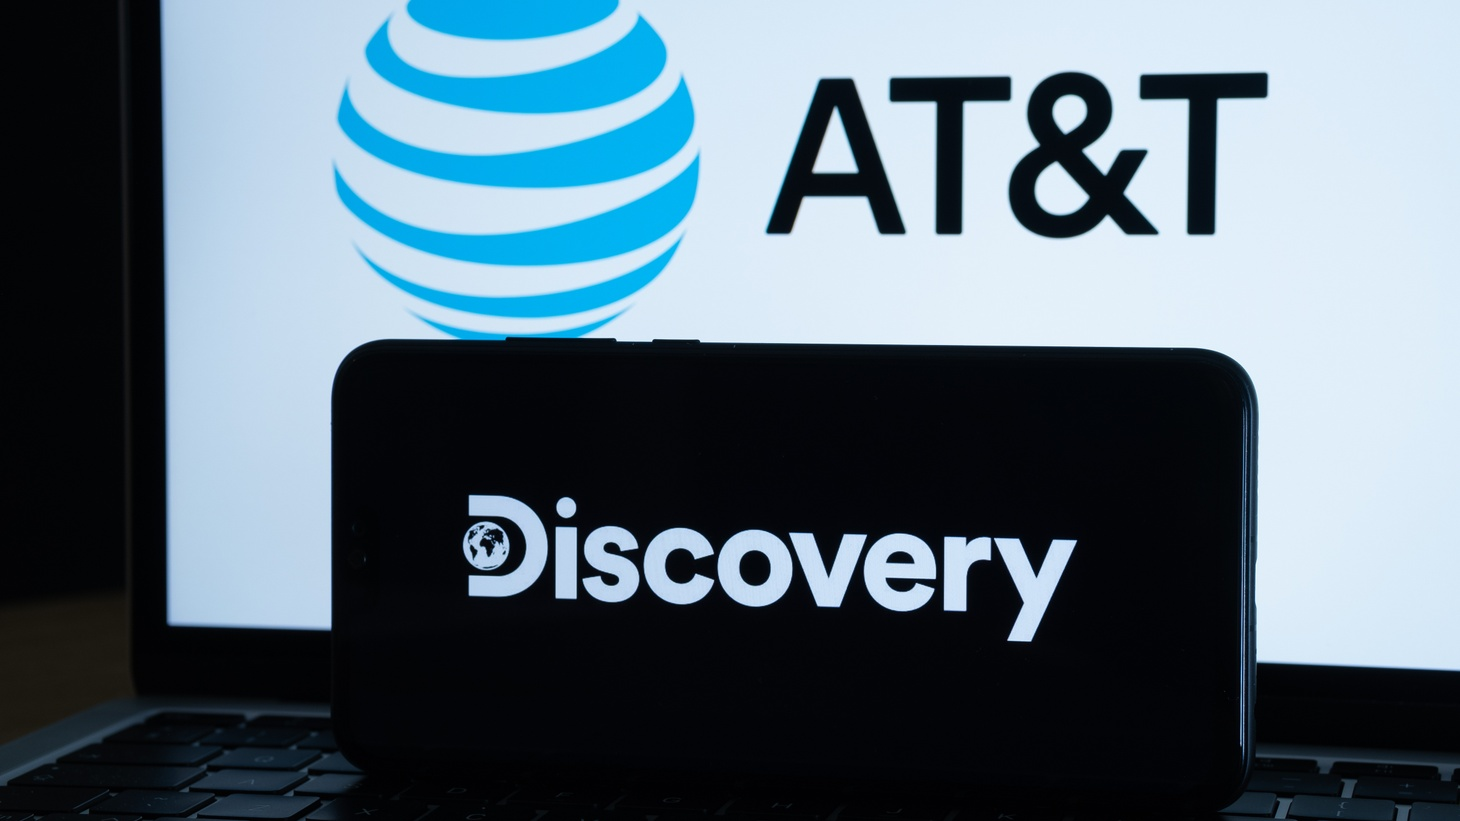 AT&T plans to spin off WarnerMedia, which it bought five years ago, and merge it with Discovery in a $100 billion deal.